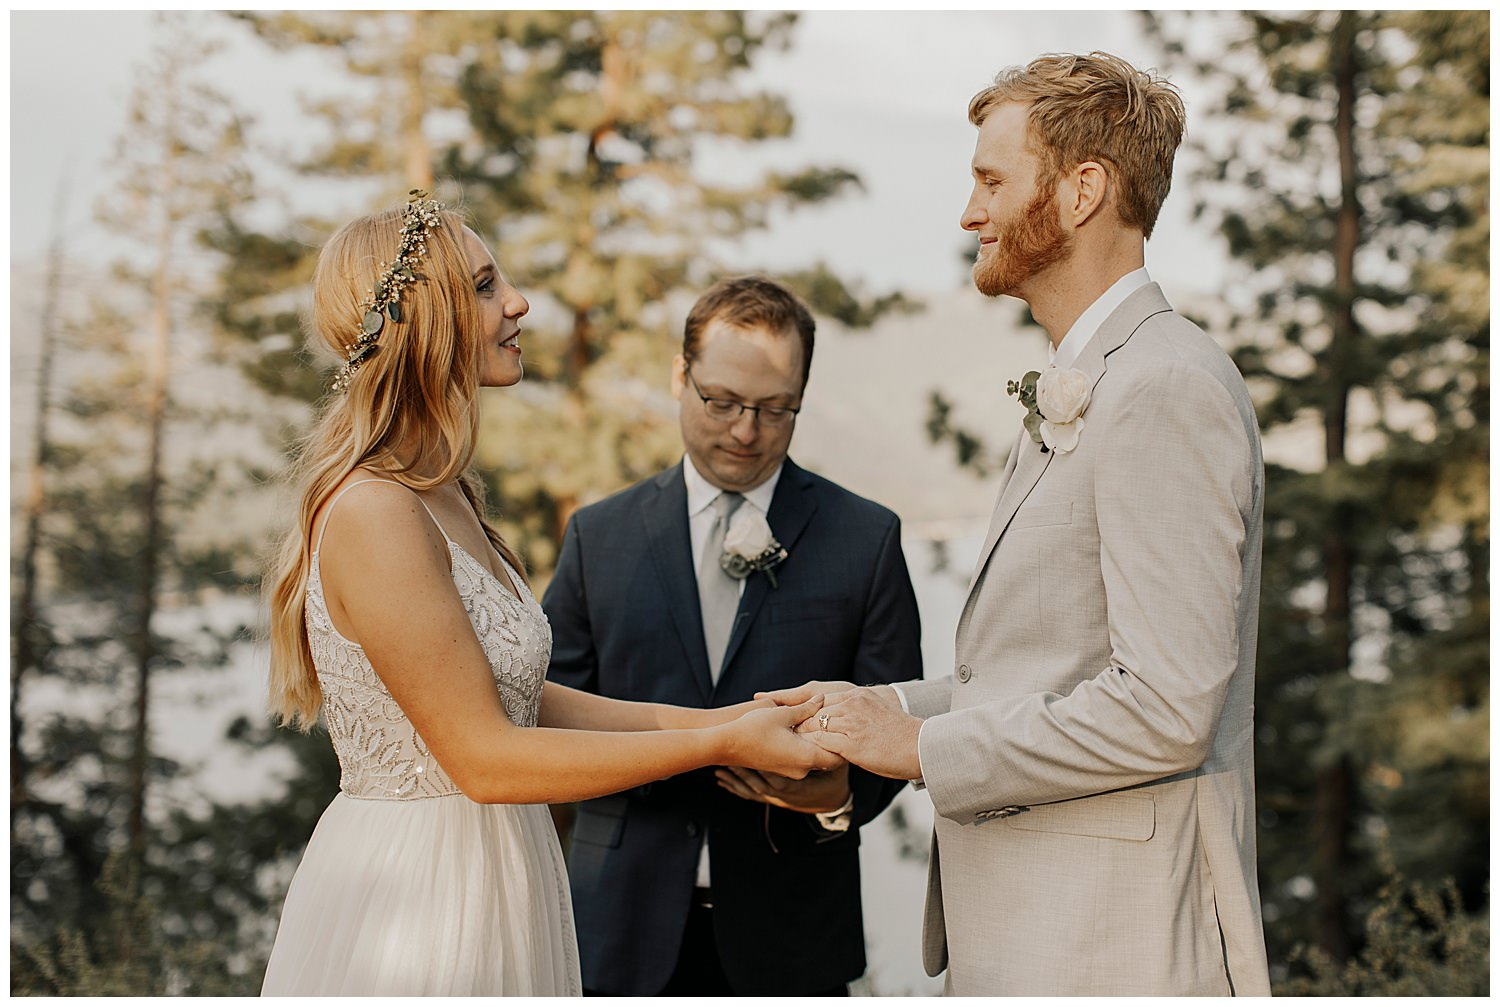 bride and groom smile at each other after exchanging rings at lake tahoe elopement